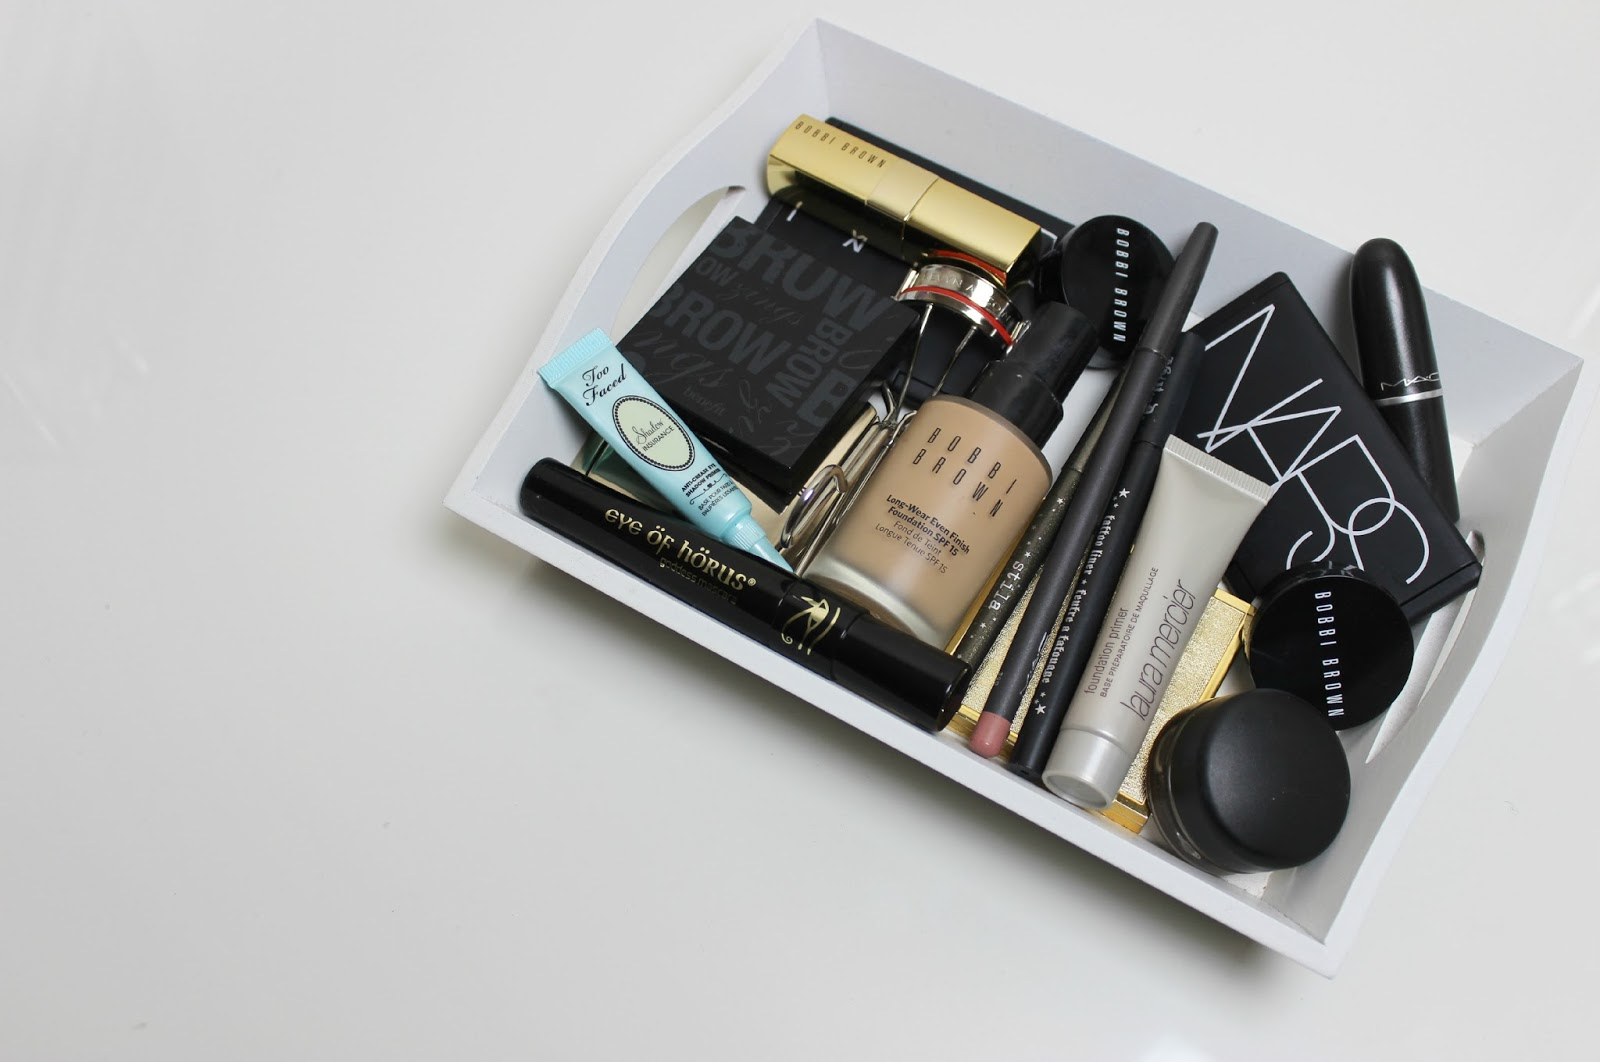 A tray of high-end makeup products